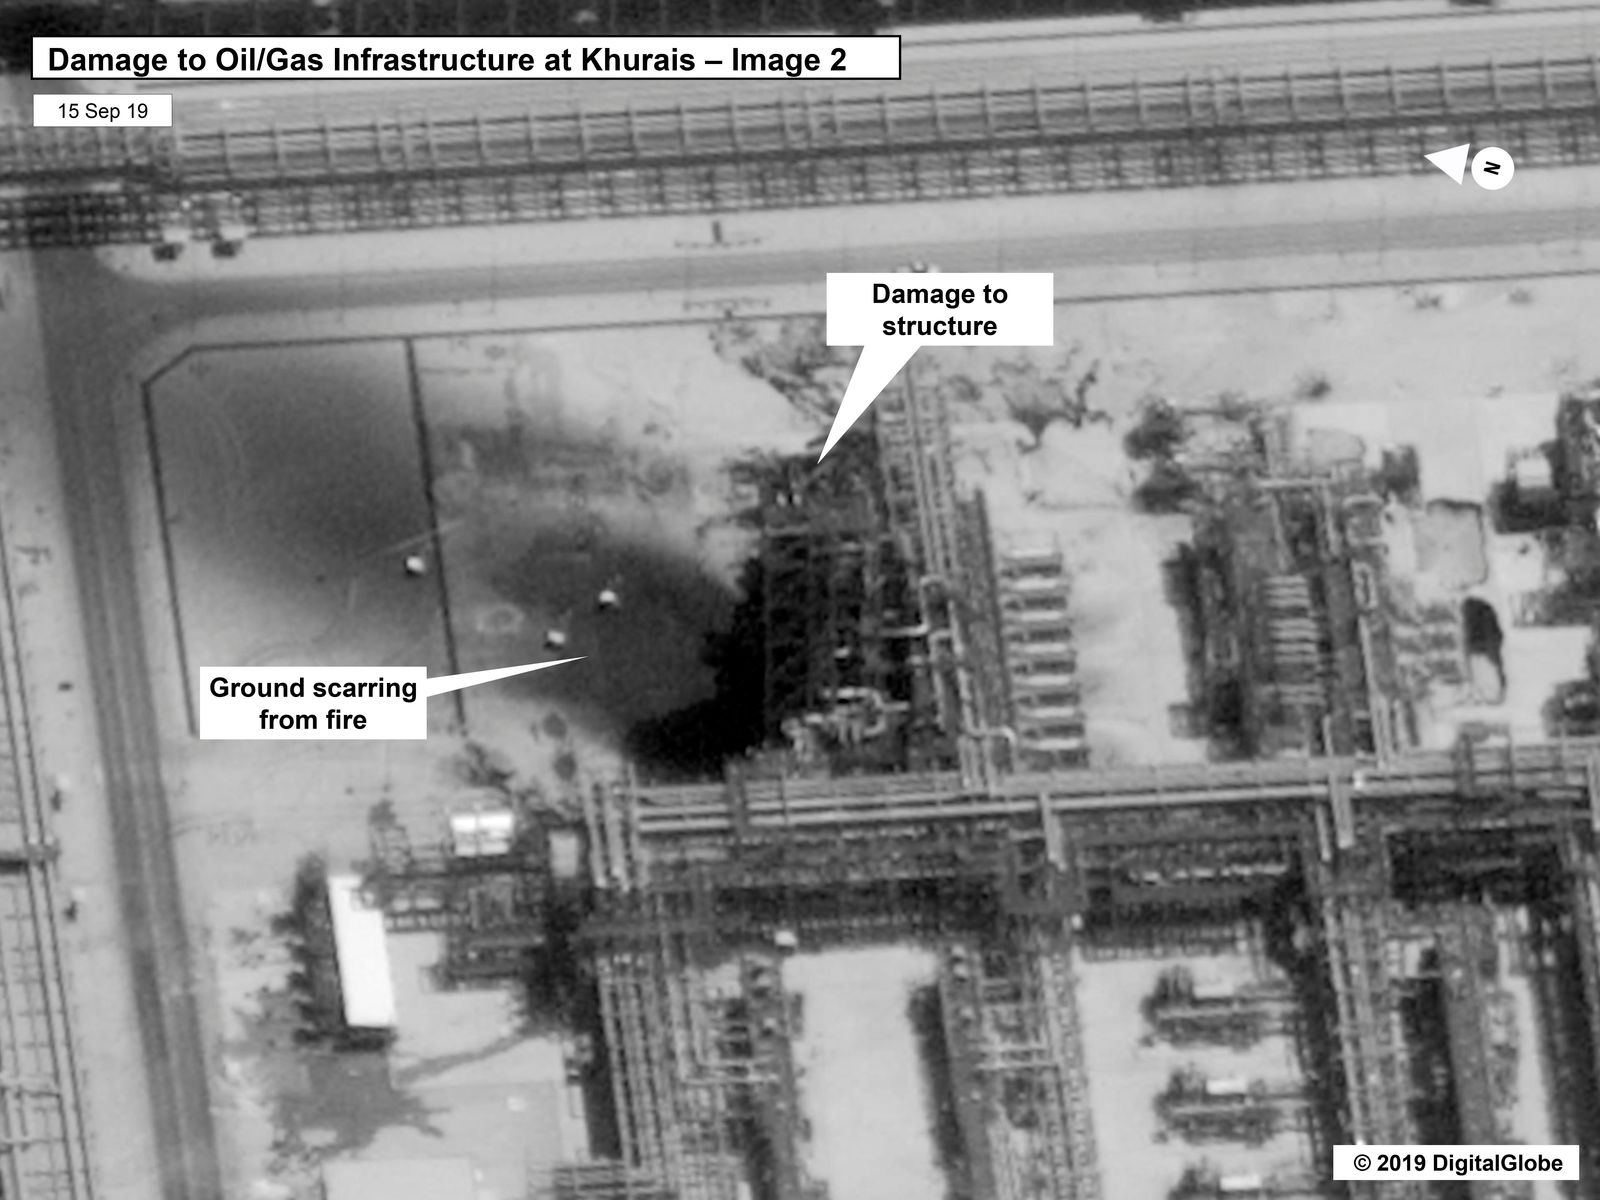 This image provided on Sunday, Sept. 15, 2019, by the U.S. government and DigitalGlobe and annotated by the source, shows damage to the infrastructure at Saudi Aramco's Kuirais oil field in Buqyaq, Saudi Arabia.{ } (U.S. government/Digital Globe via AP)